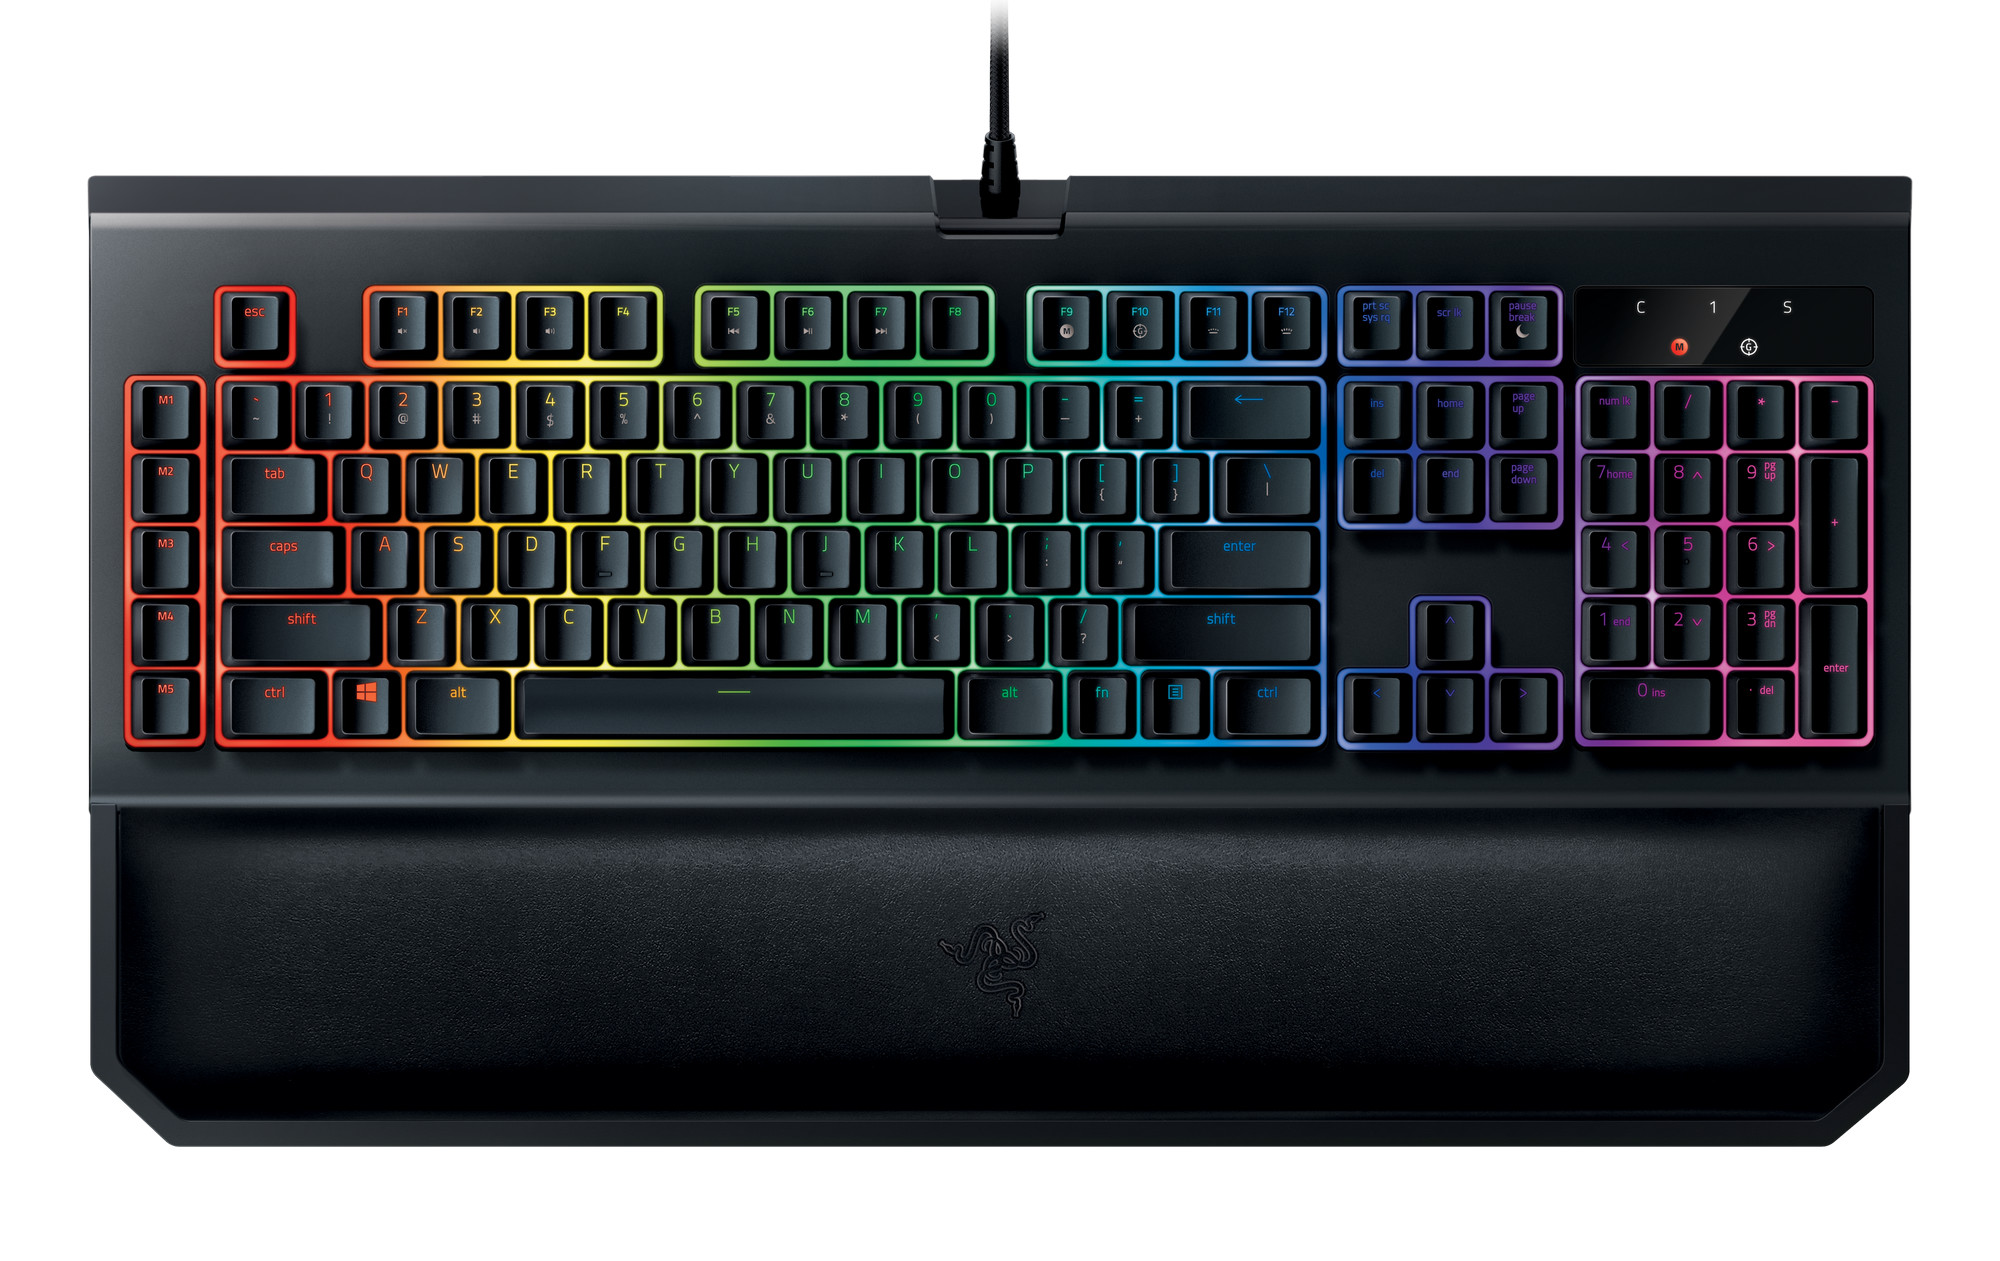 Unchanged BlackWidow features on this V2 version include Razeru0027s Chroma lighting (which boasts inidually backlit keys at 16.8 million colors per key) ...  sc 1 st  TechPowerUp & Razer Updates Its Successful BlackWidow Chroma Keyboard ...